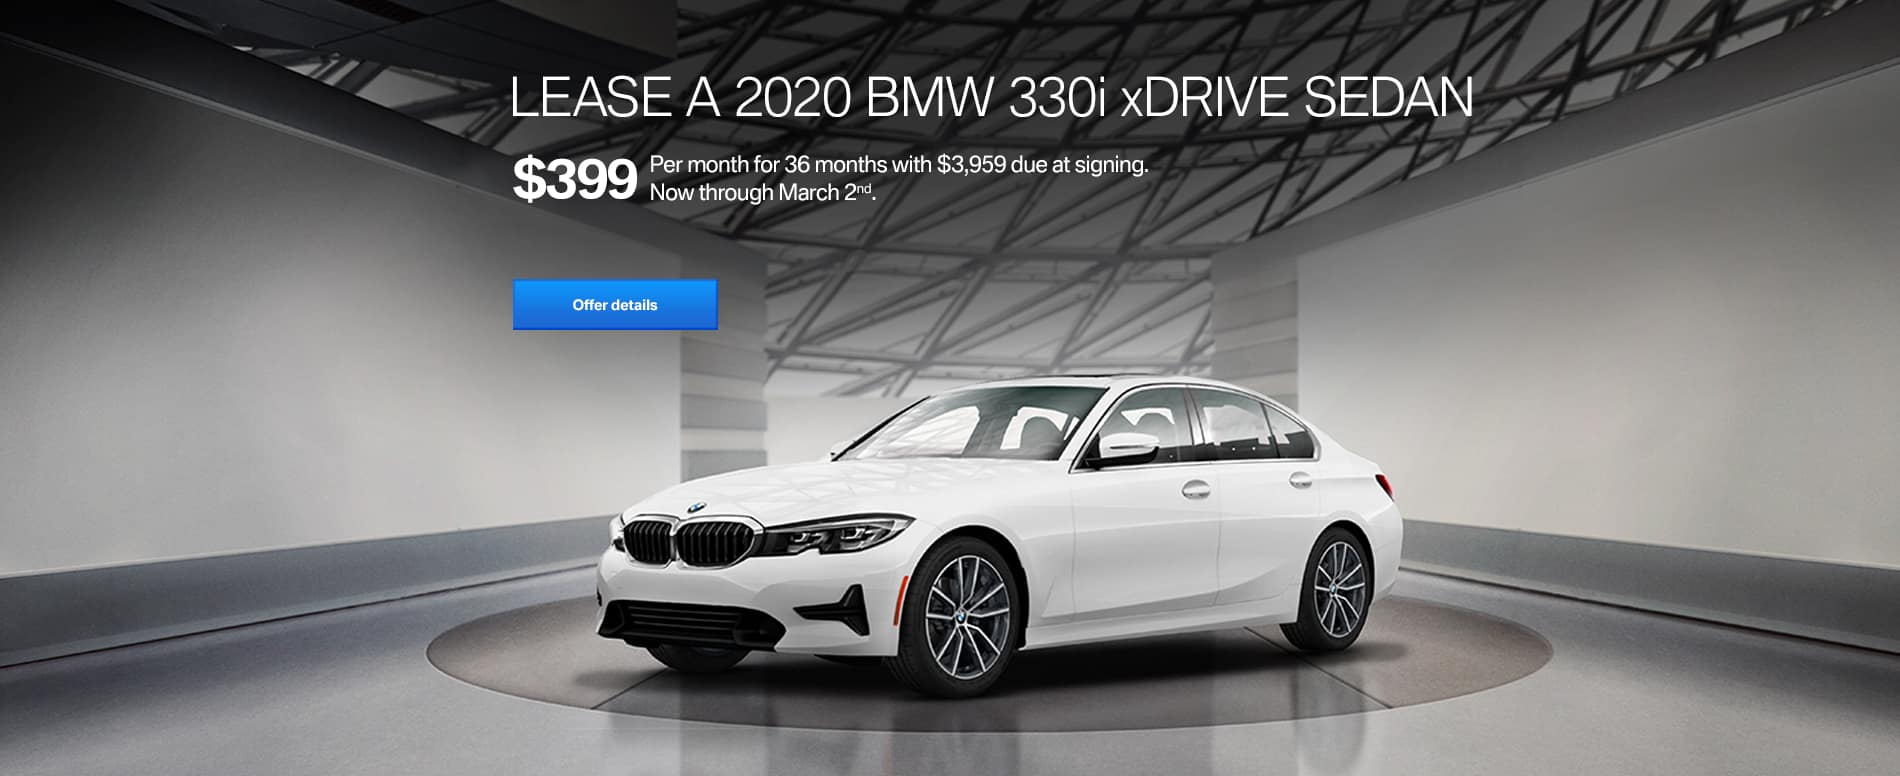 StlKCFEB_PUSH_BMW_330i_xDrive_399_Desktop